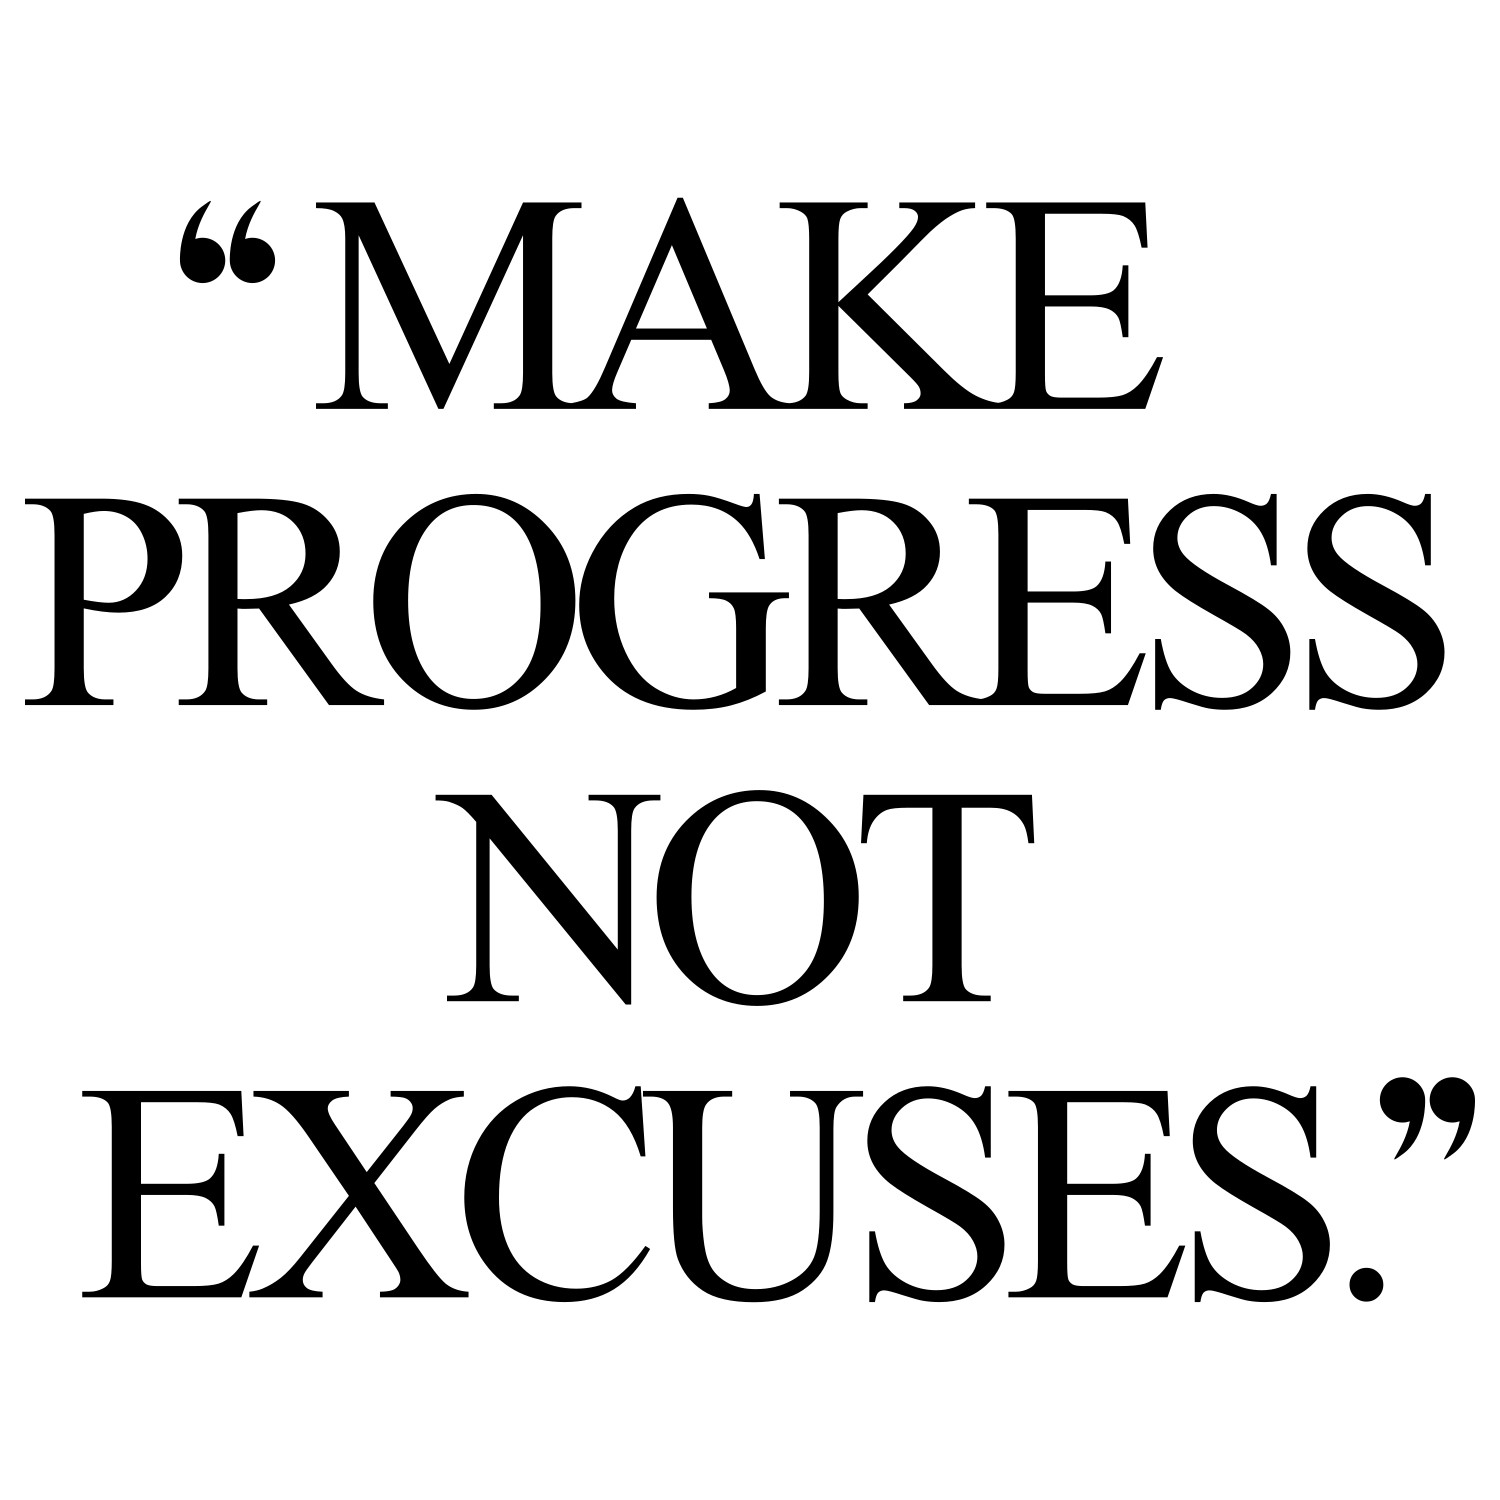 Make progress! Browse our collection of inspirational exercise and healthy eating quotes and get instant weight loss and fitness motivation. Stay focused and get fit, healthy and happy! https://www.spotebi.com/workout-motivation/make-progress/